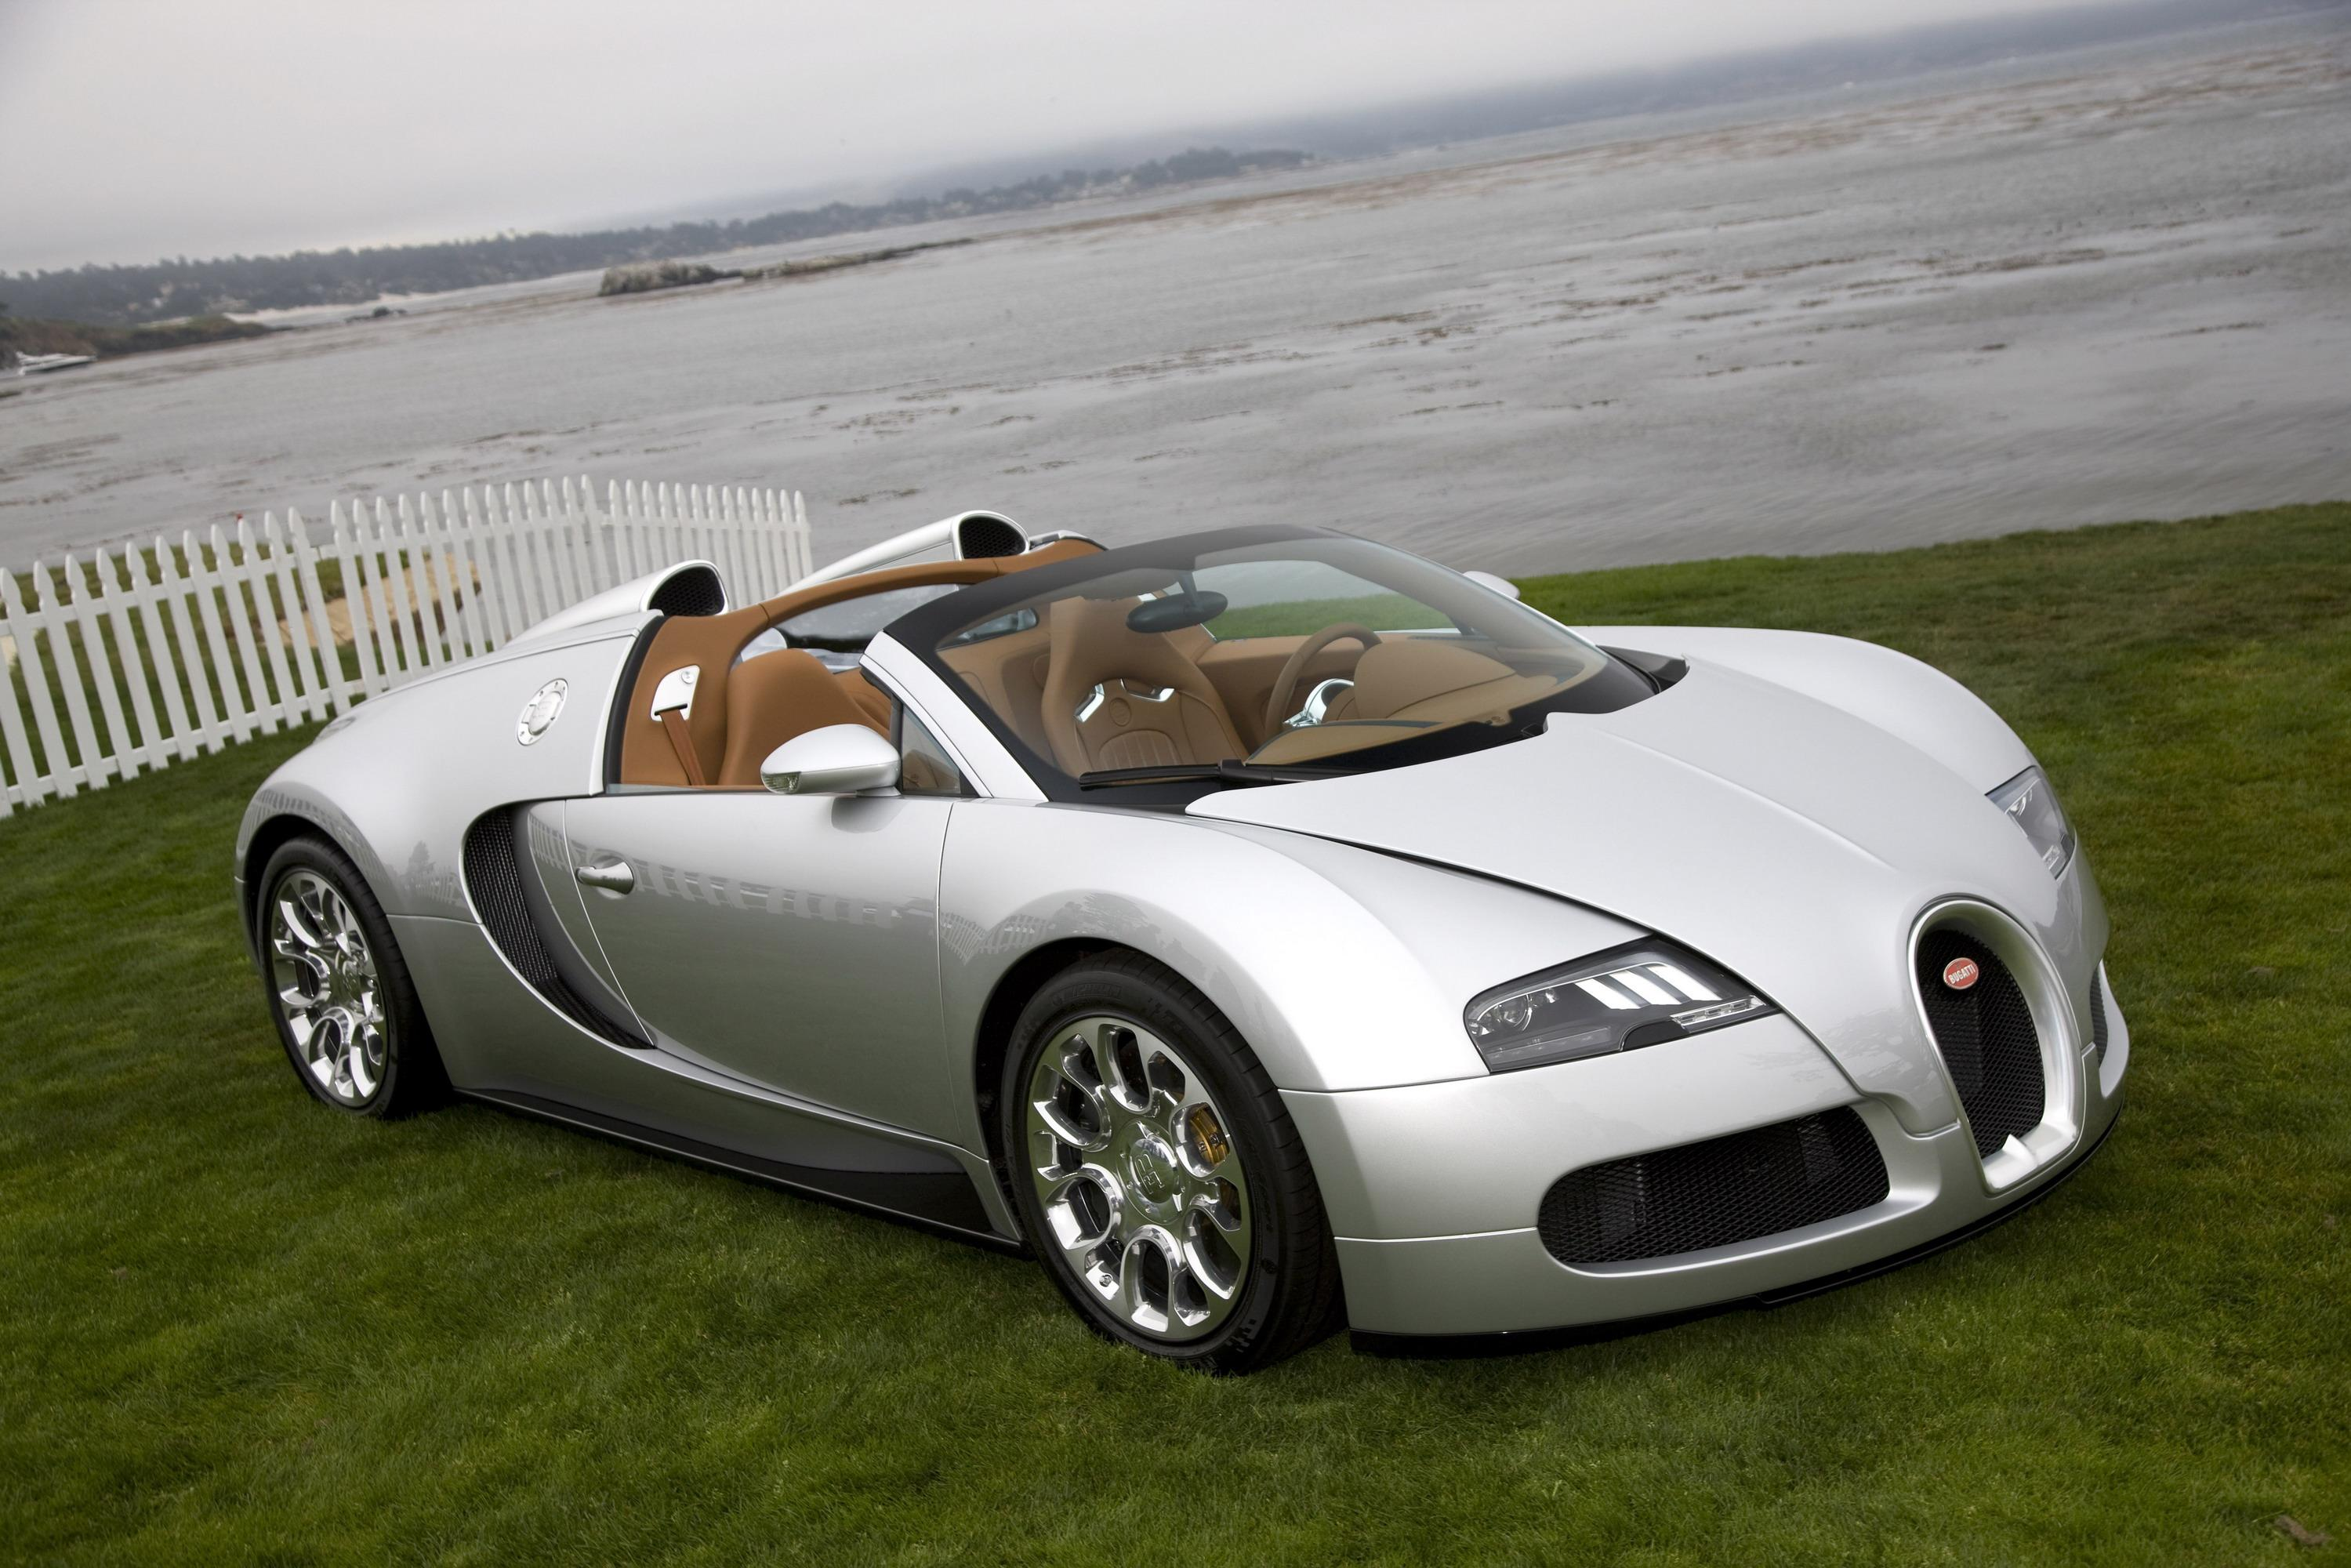 Bugatti Veyron 16 4 Grand Sport Pricing Announced Pictures Photos